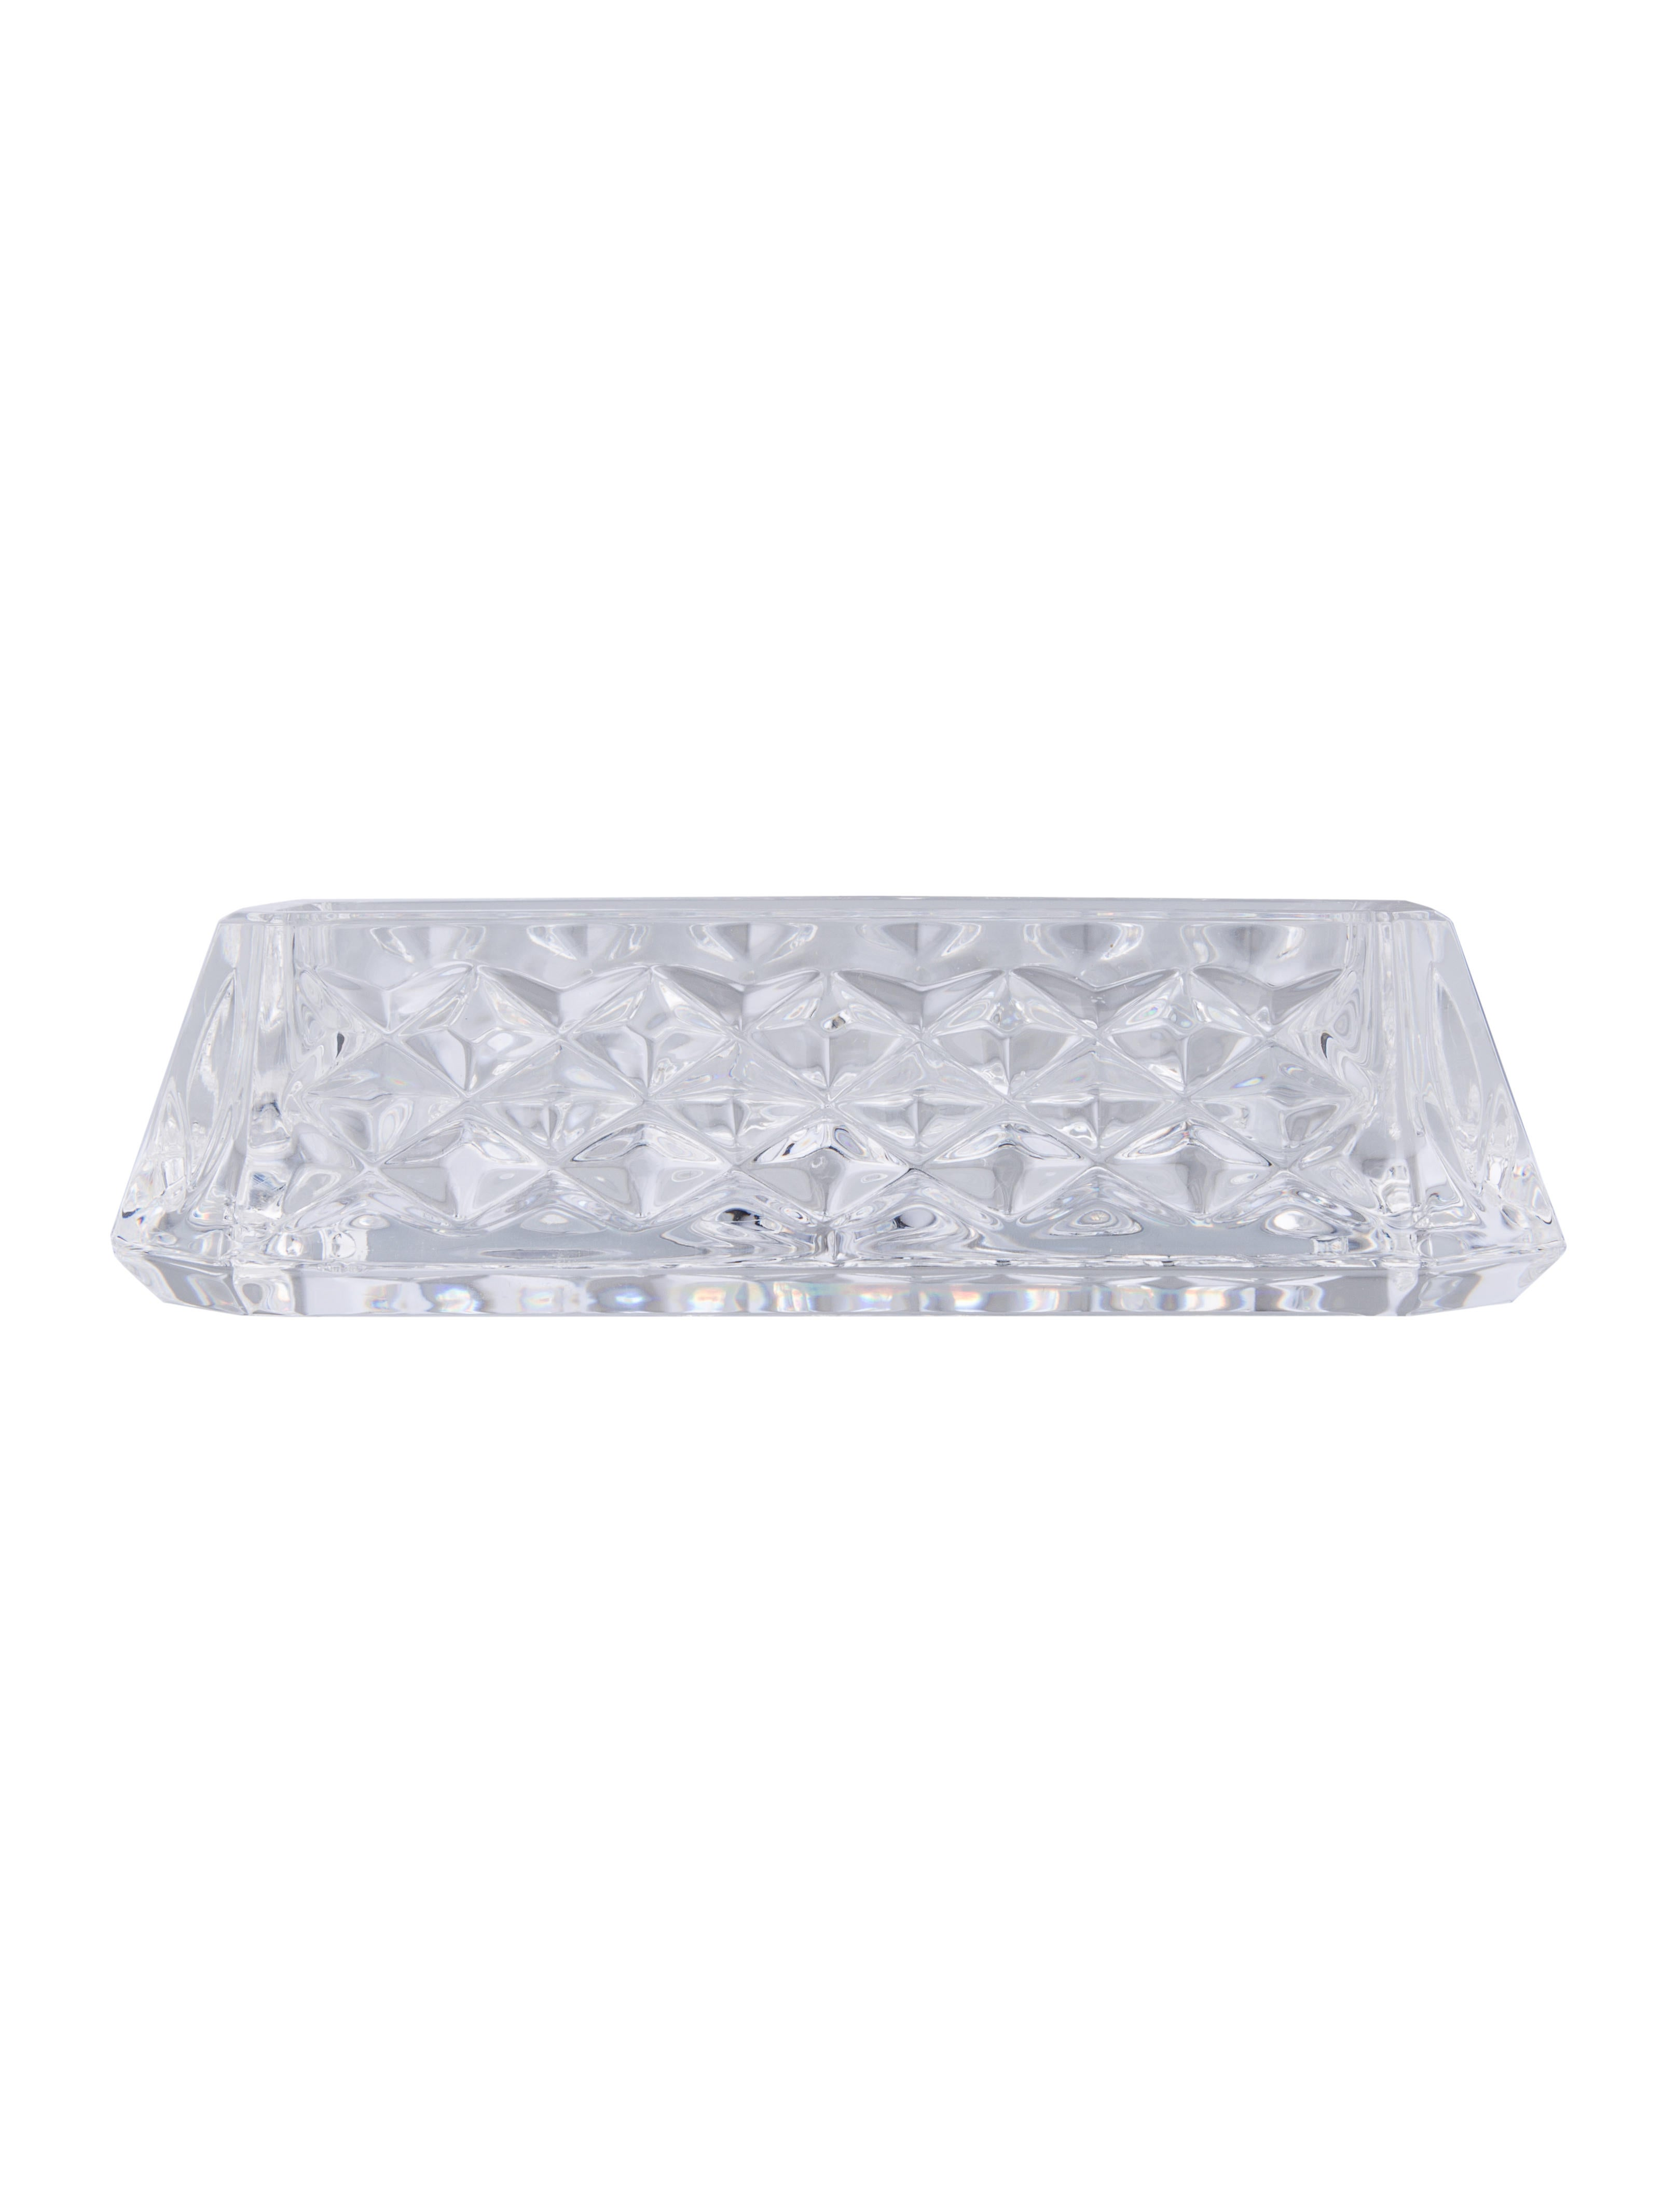 Waterford Crystal Westover Business Card Holder - Decor And ...